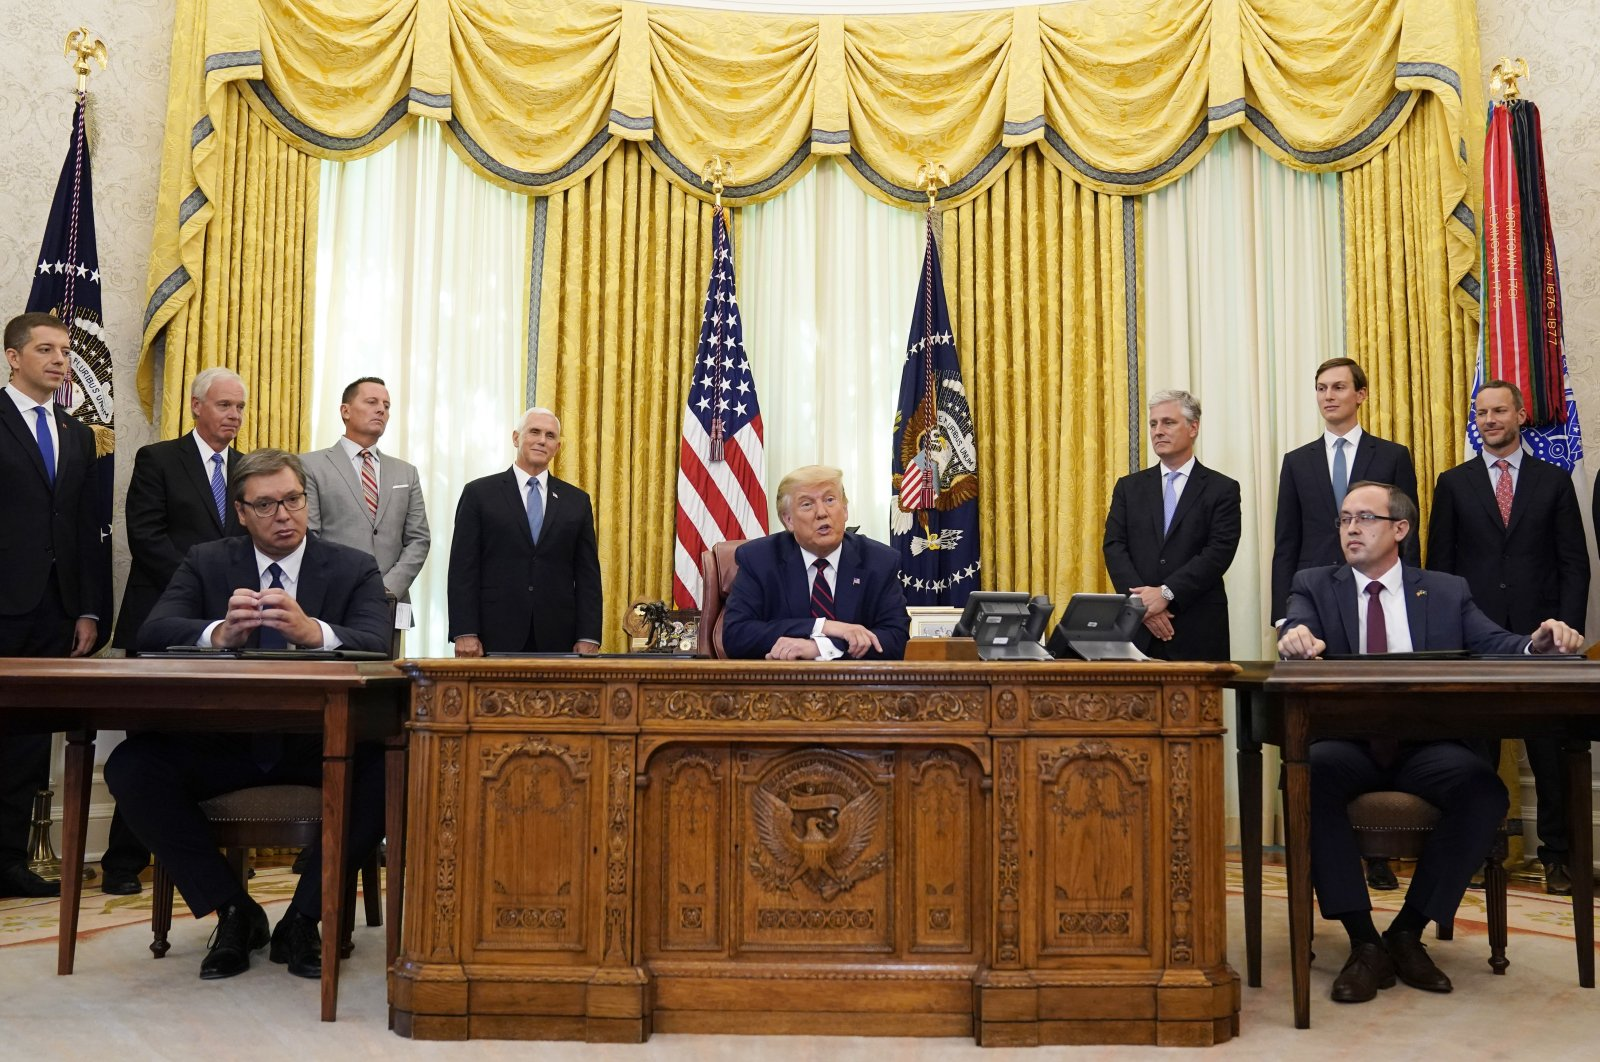 U.S. President Donald Trump (C) speaks after participating in a signing ceremony with Serbian President Aleksandar Vucic (L) and Kosovar Prime Minister Avdullah Hoti in the Oval Office of the White House, Friday, Sept. 4, 2020, in Washington. (AP Photo)